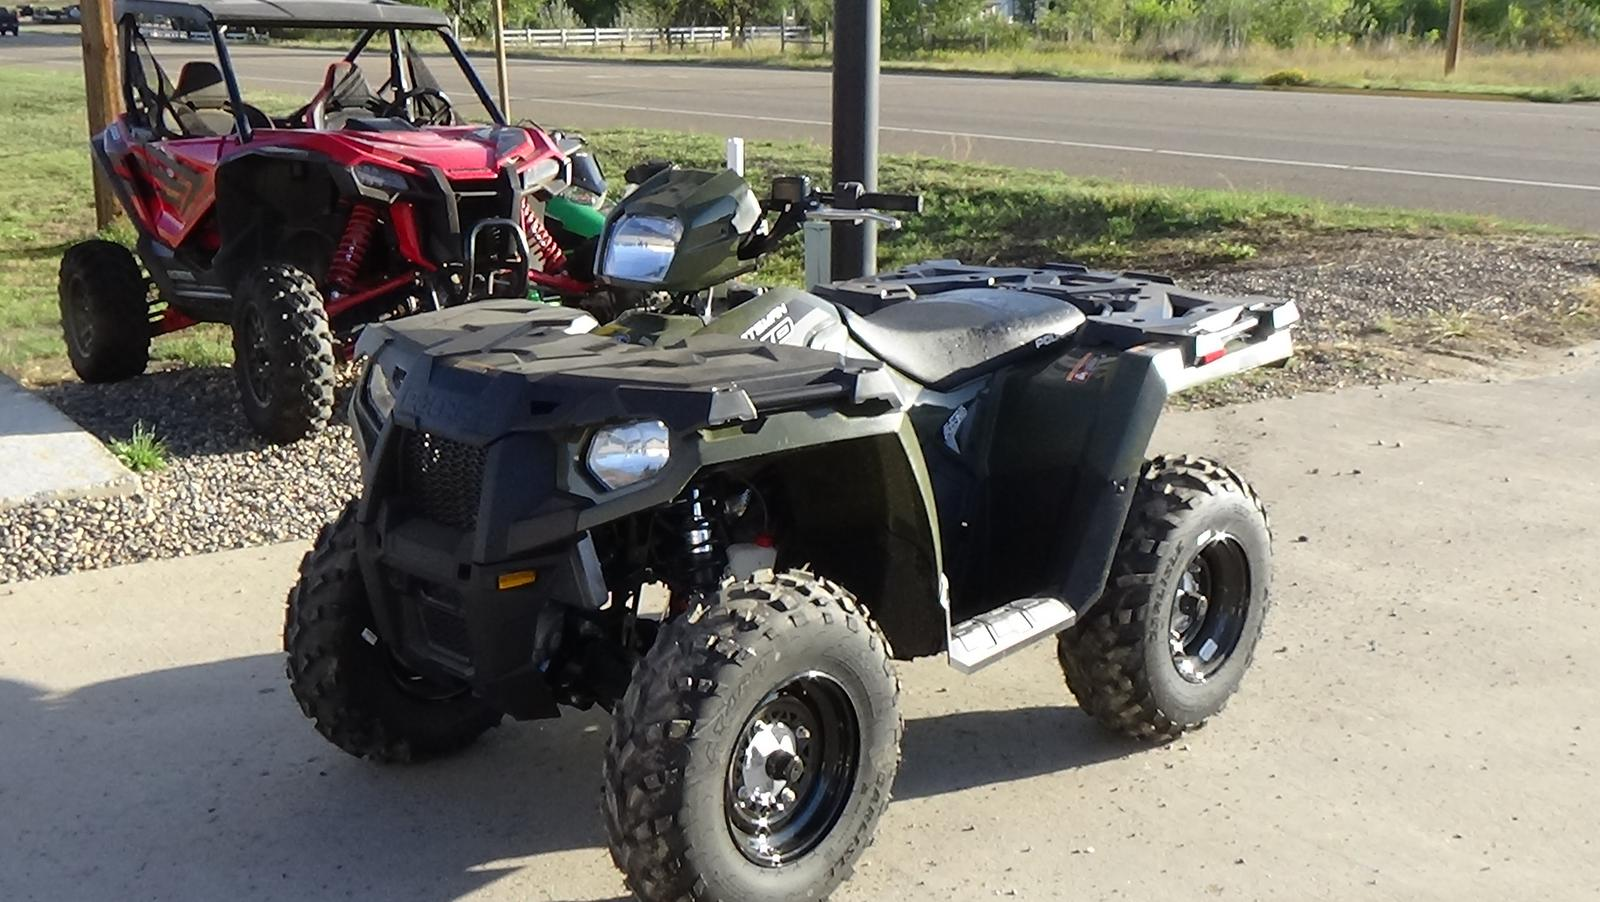 2019 polaris industries sportsman� 570 eps - sage green